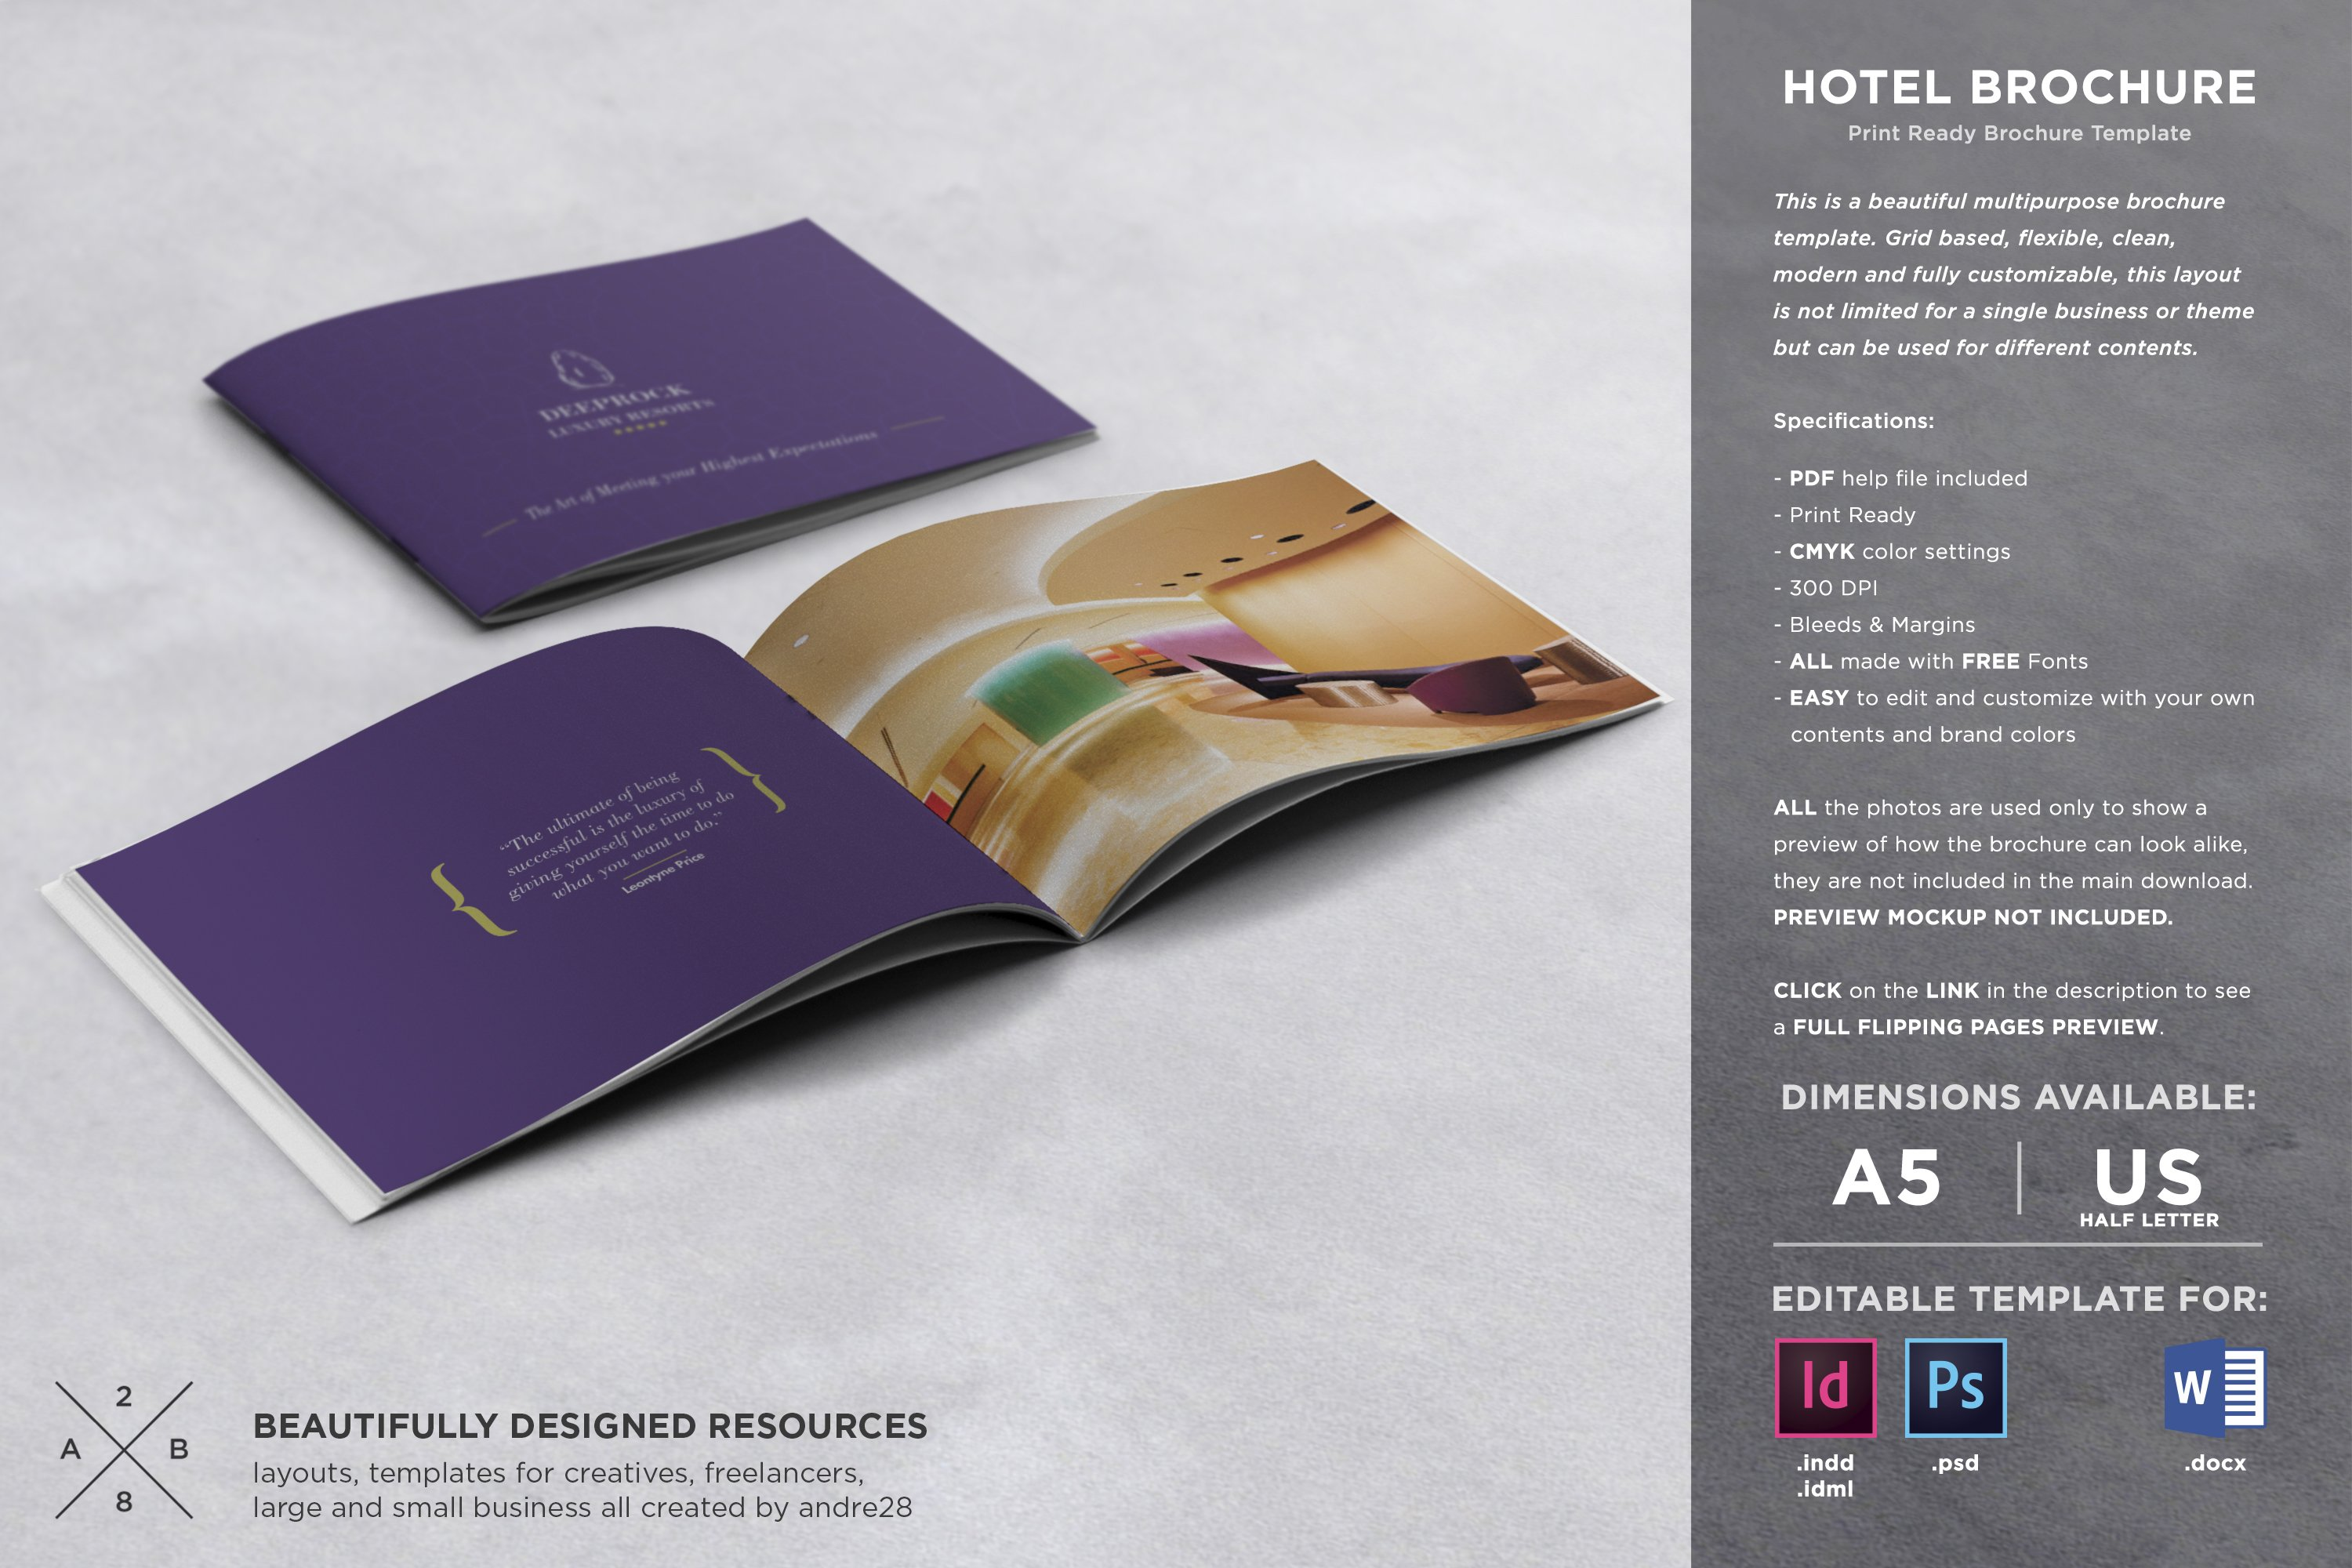 Hotel brochure template brochure templates creative market for Hotel brochure templates free download